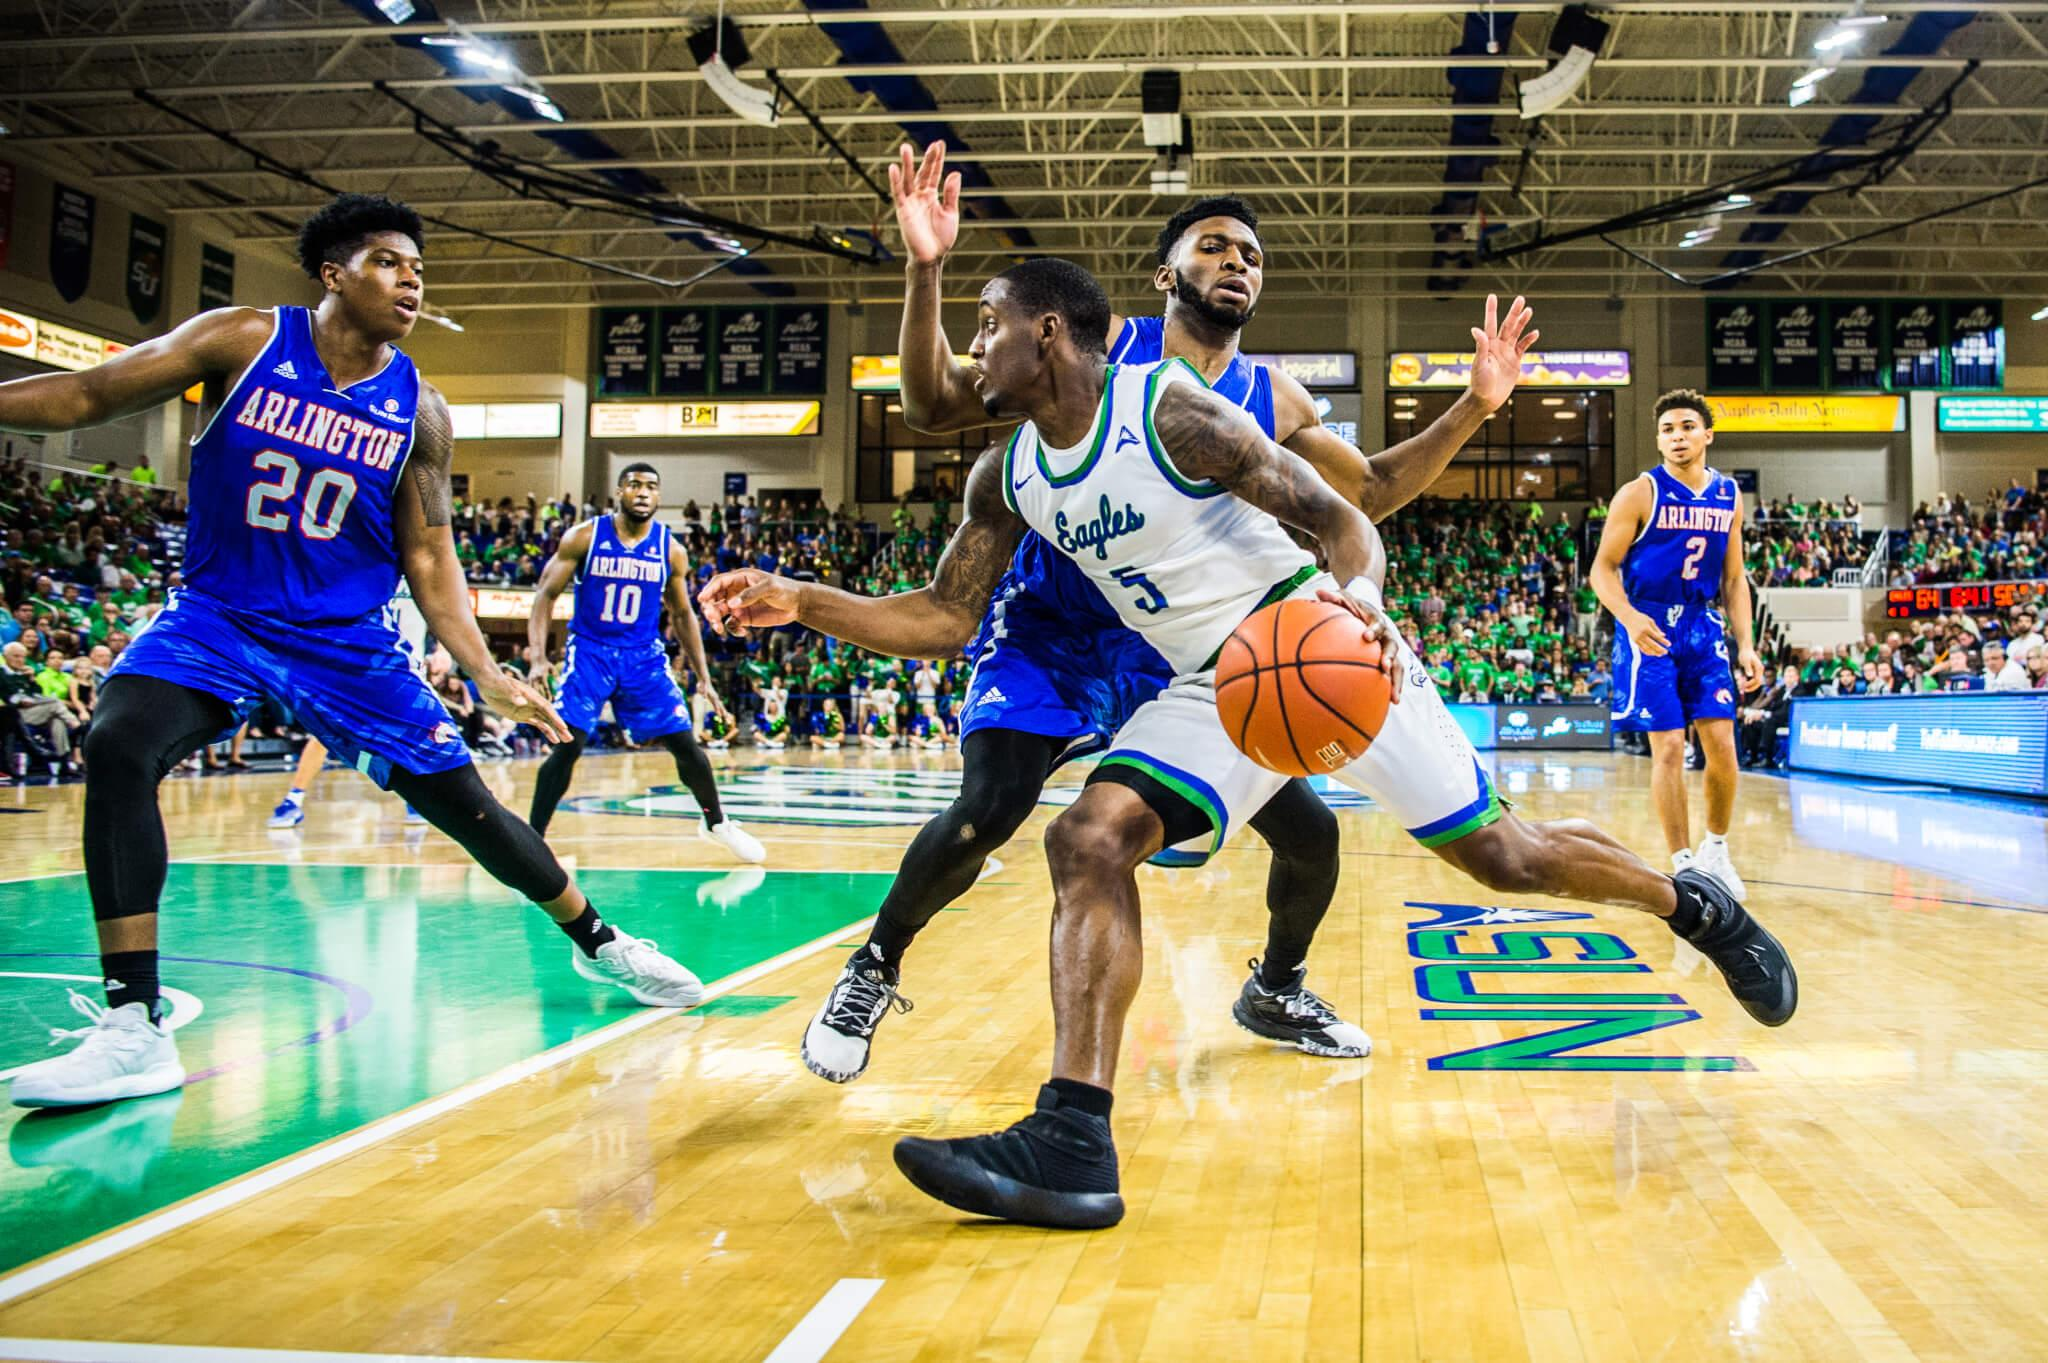 FGCU men's basketball rides big second half performance to victory